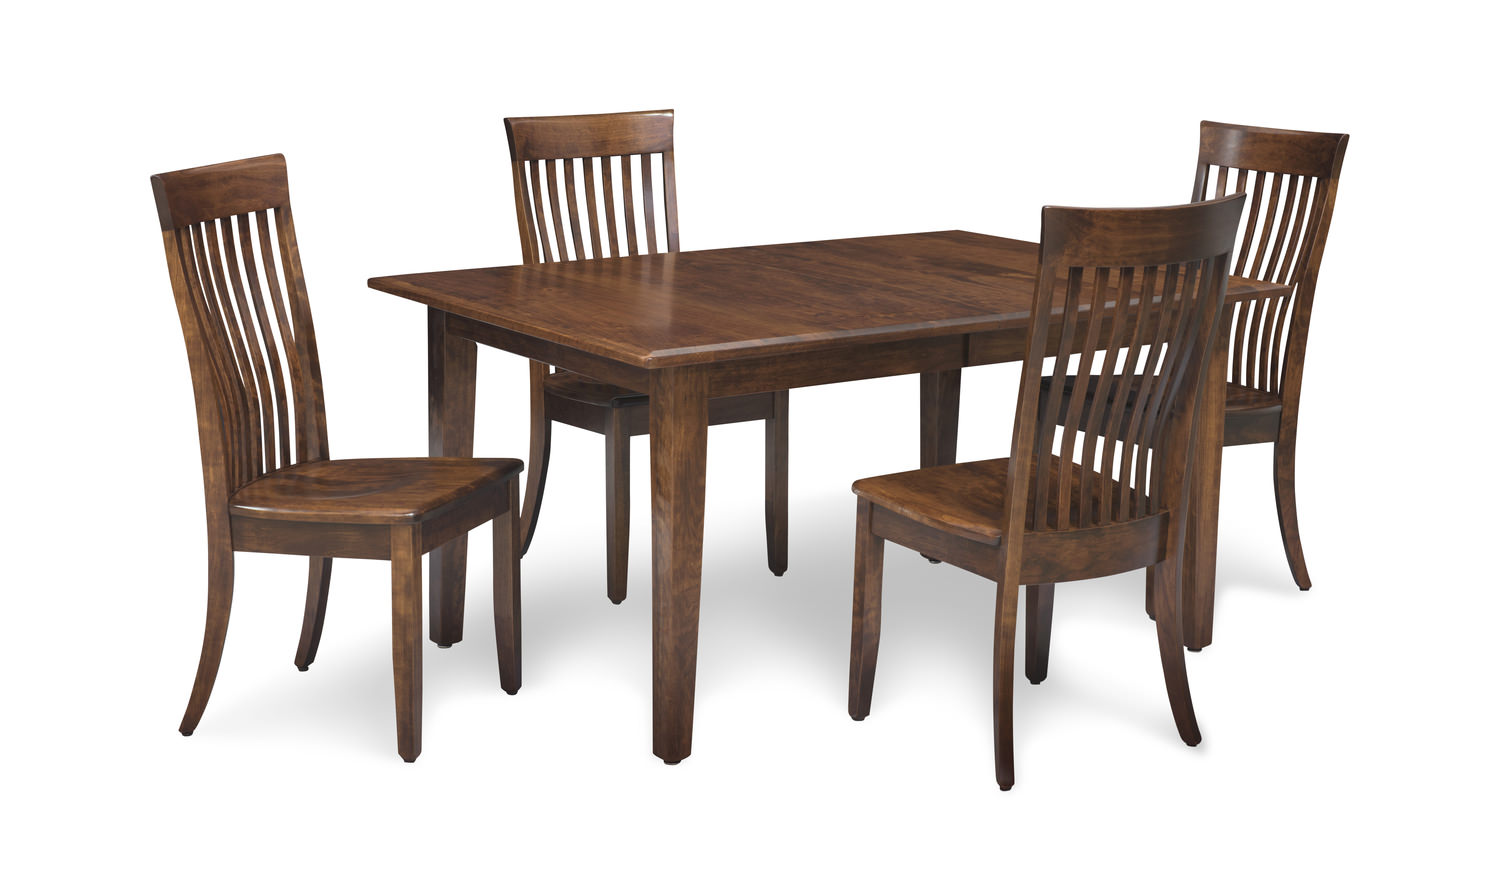 Portland Leg Table With 4 Chairs Hom Furniture